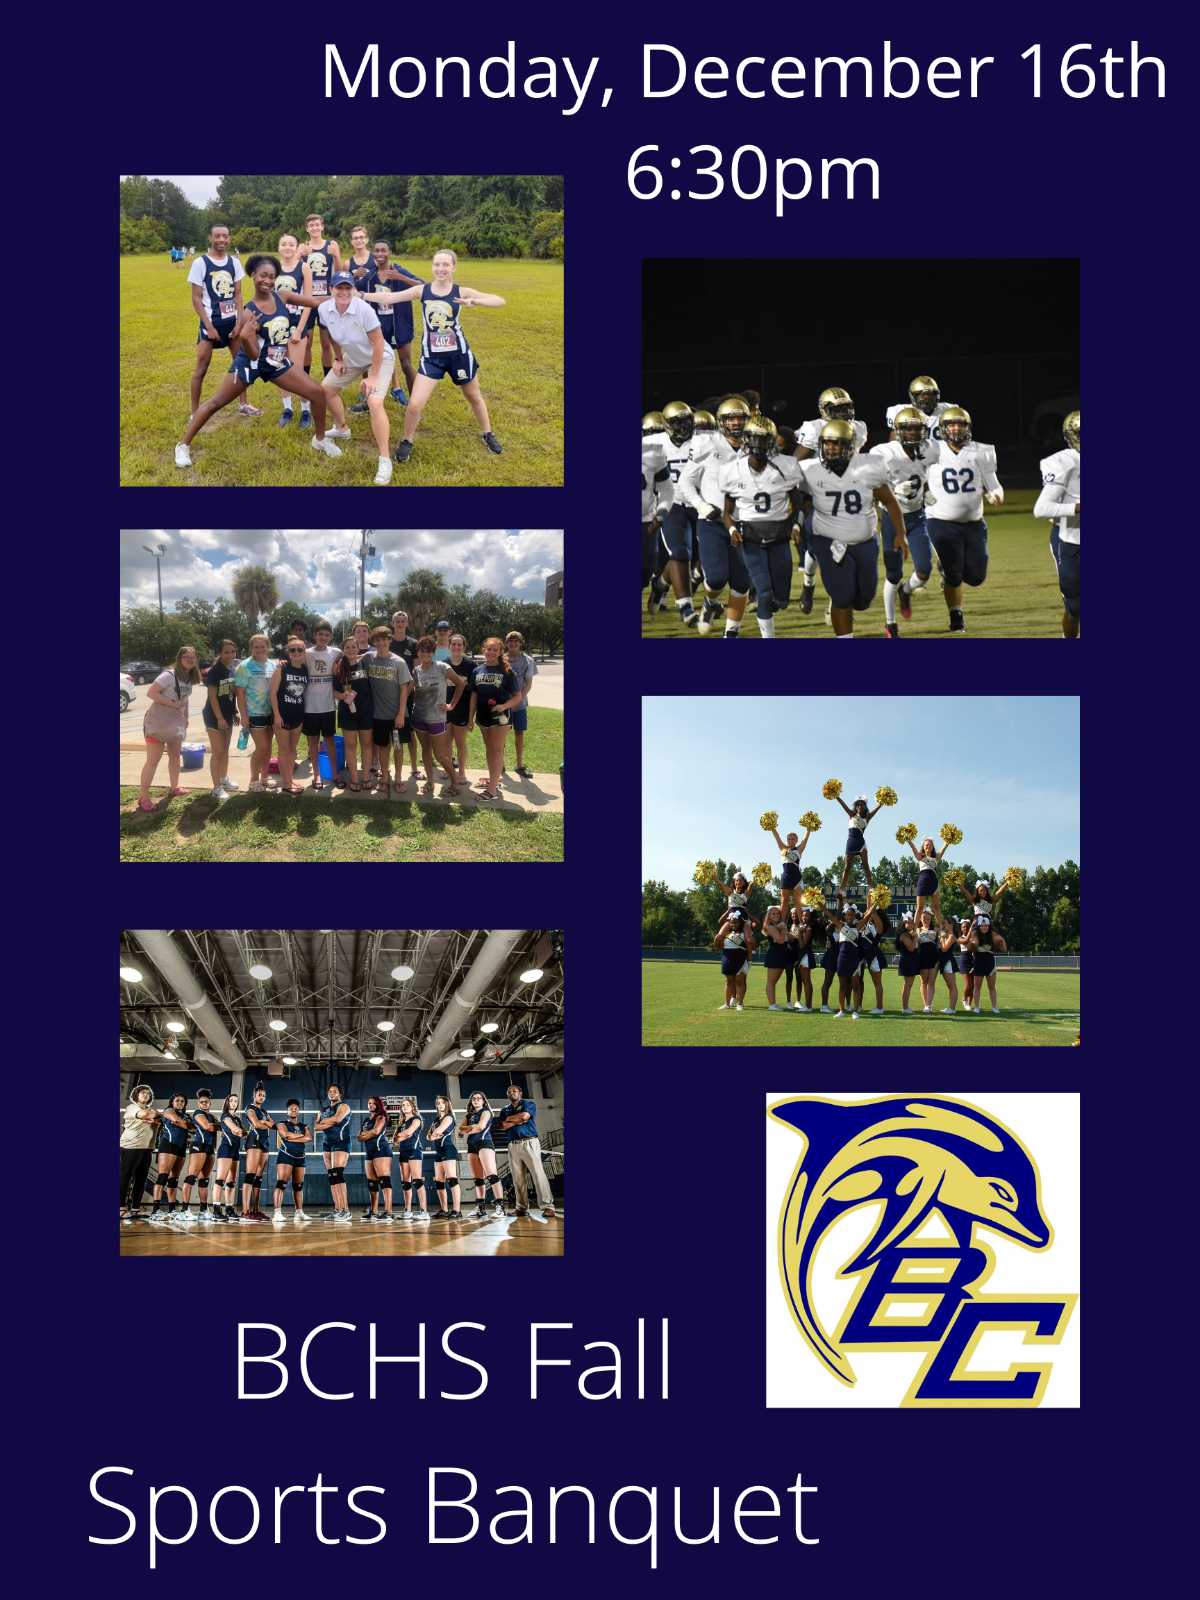 BCHS Fall Sports Banquet Monday, December 16th @ 6:30pm